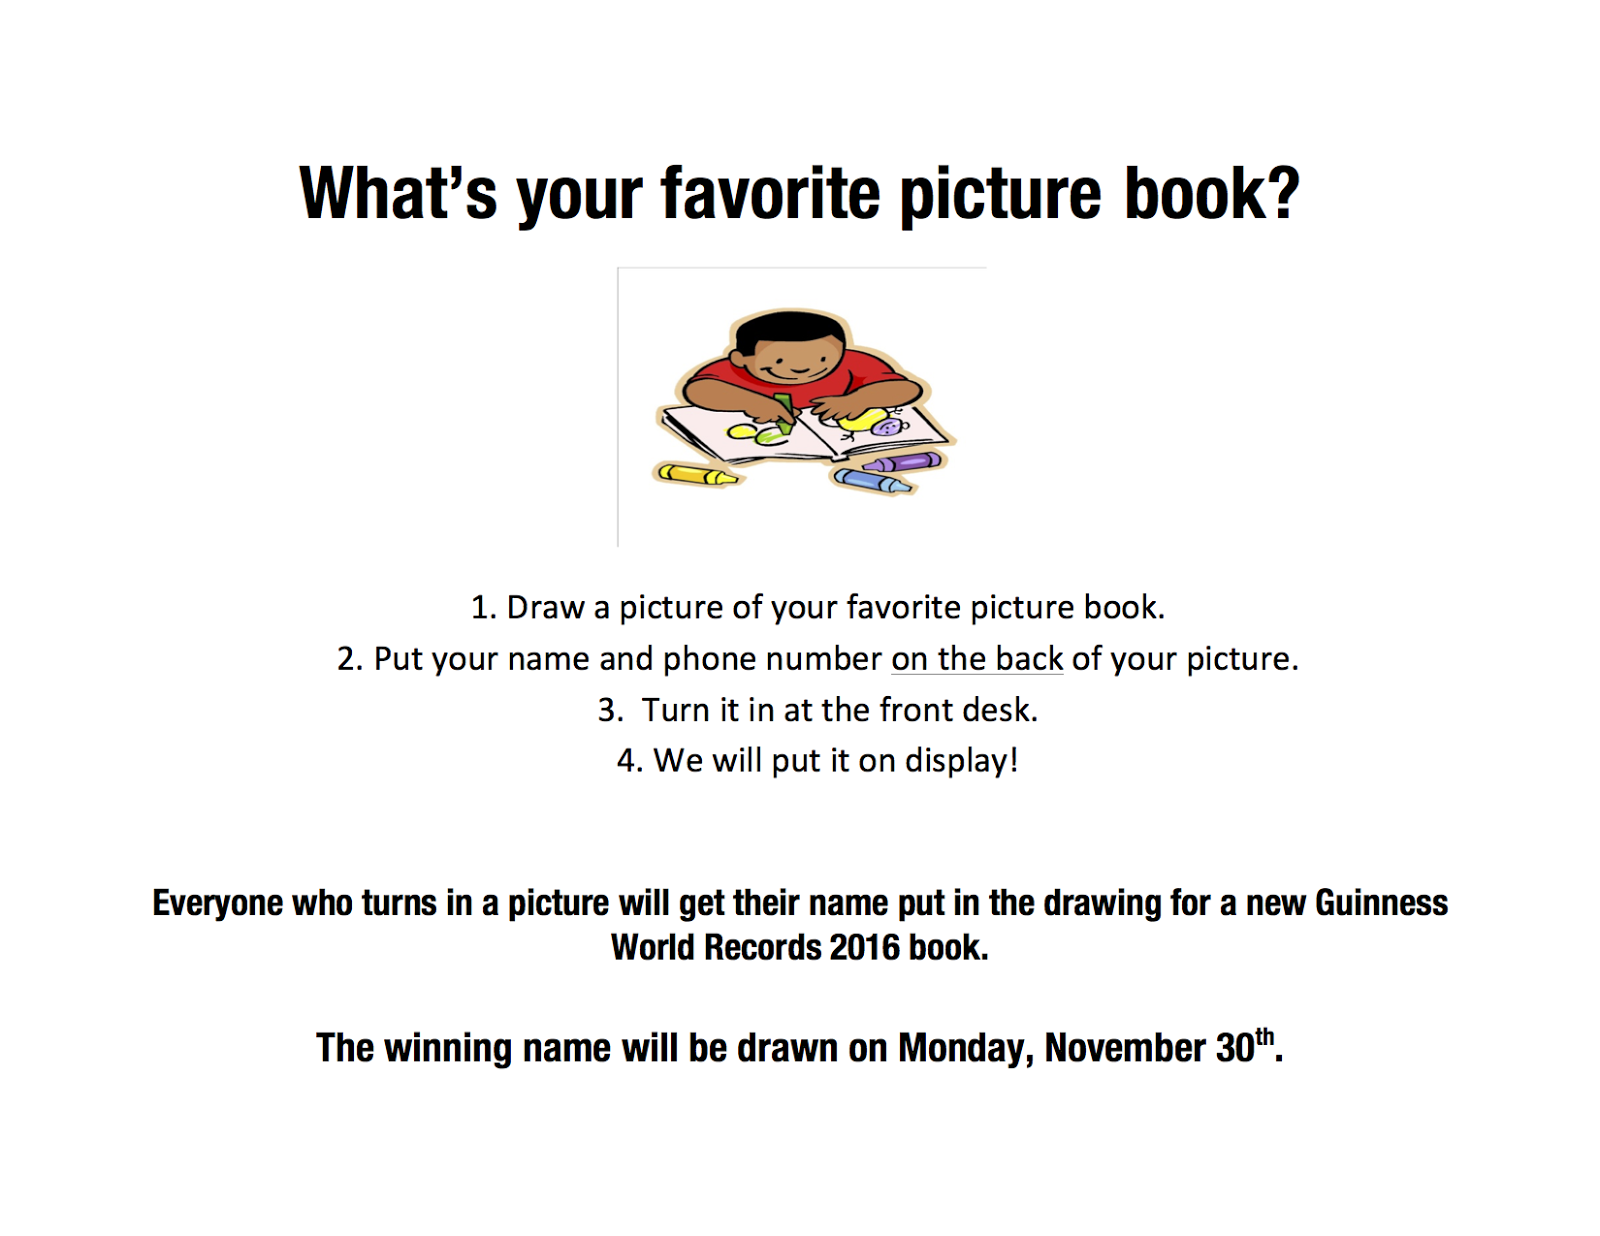 Sturgis Public Library: Draw a picture of your favorite